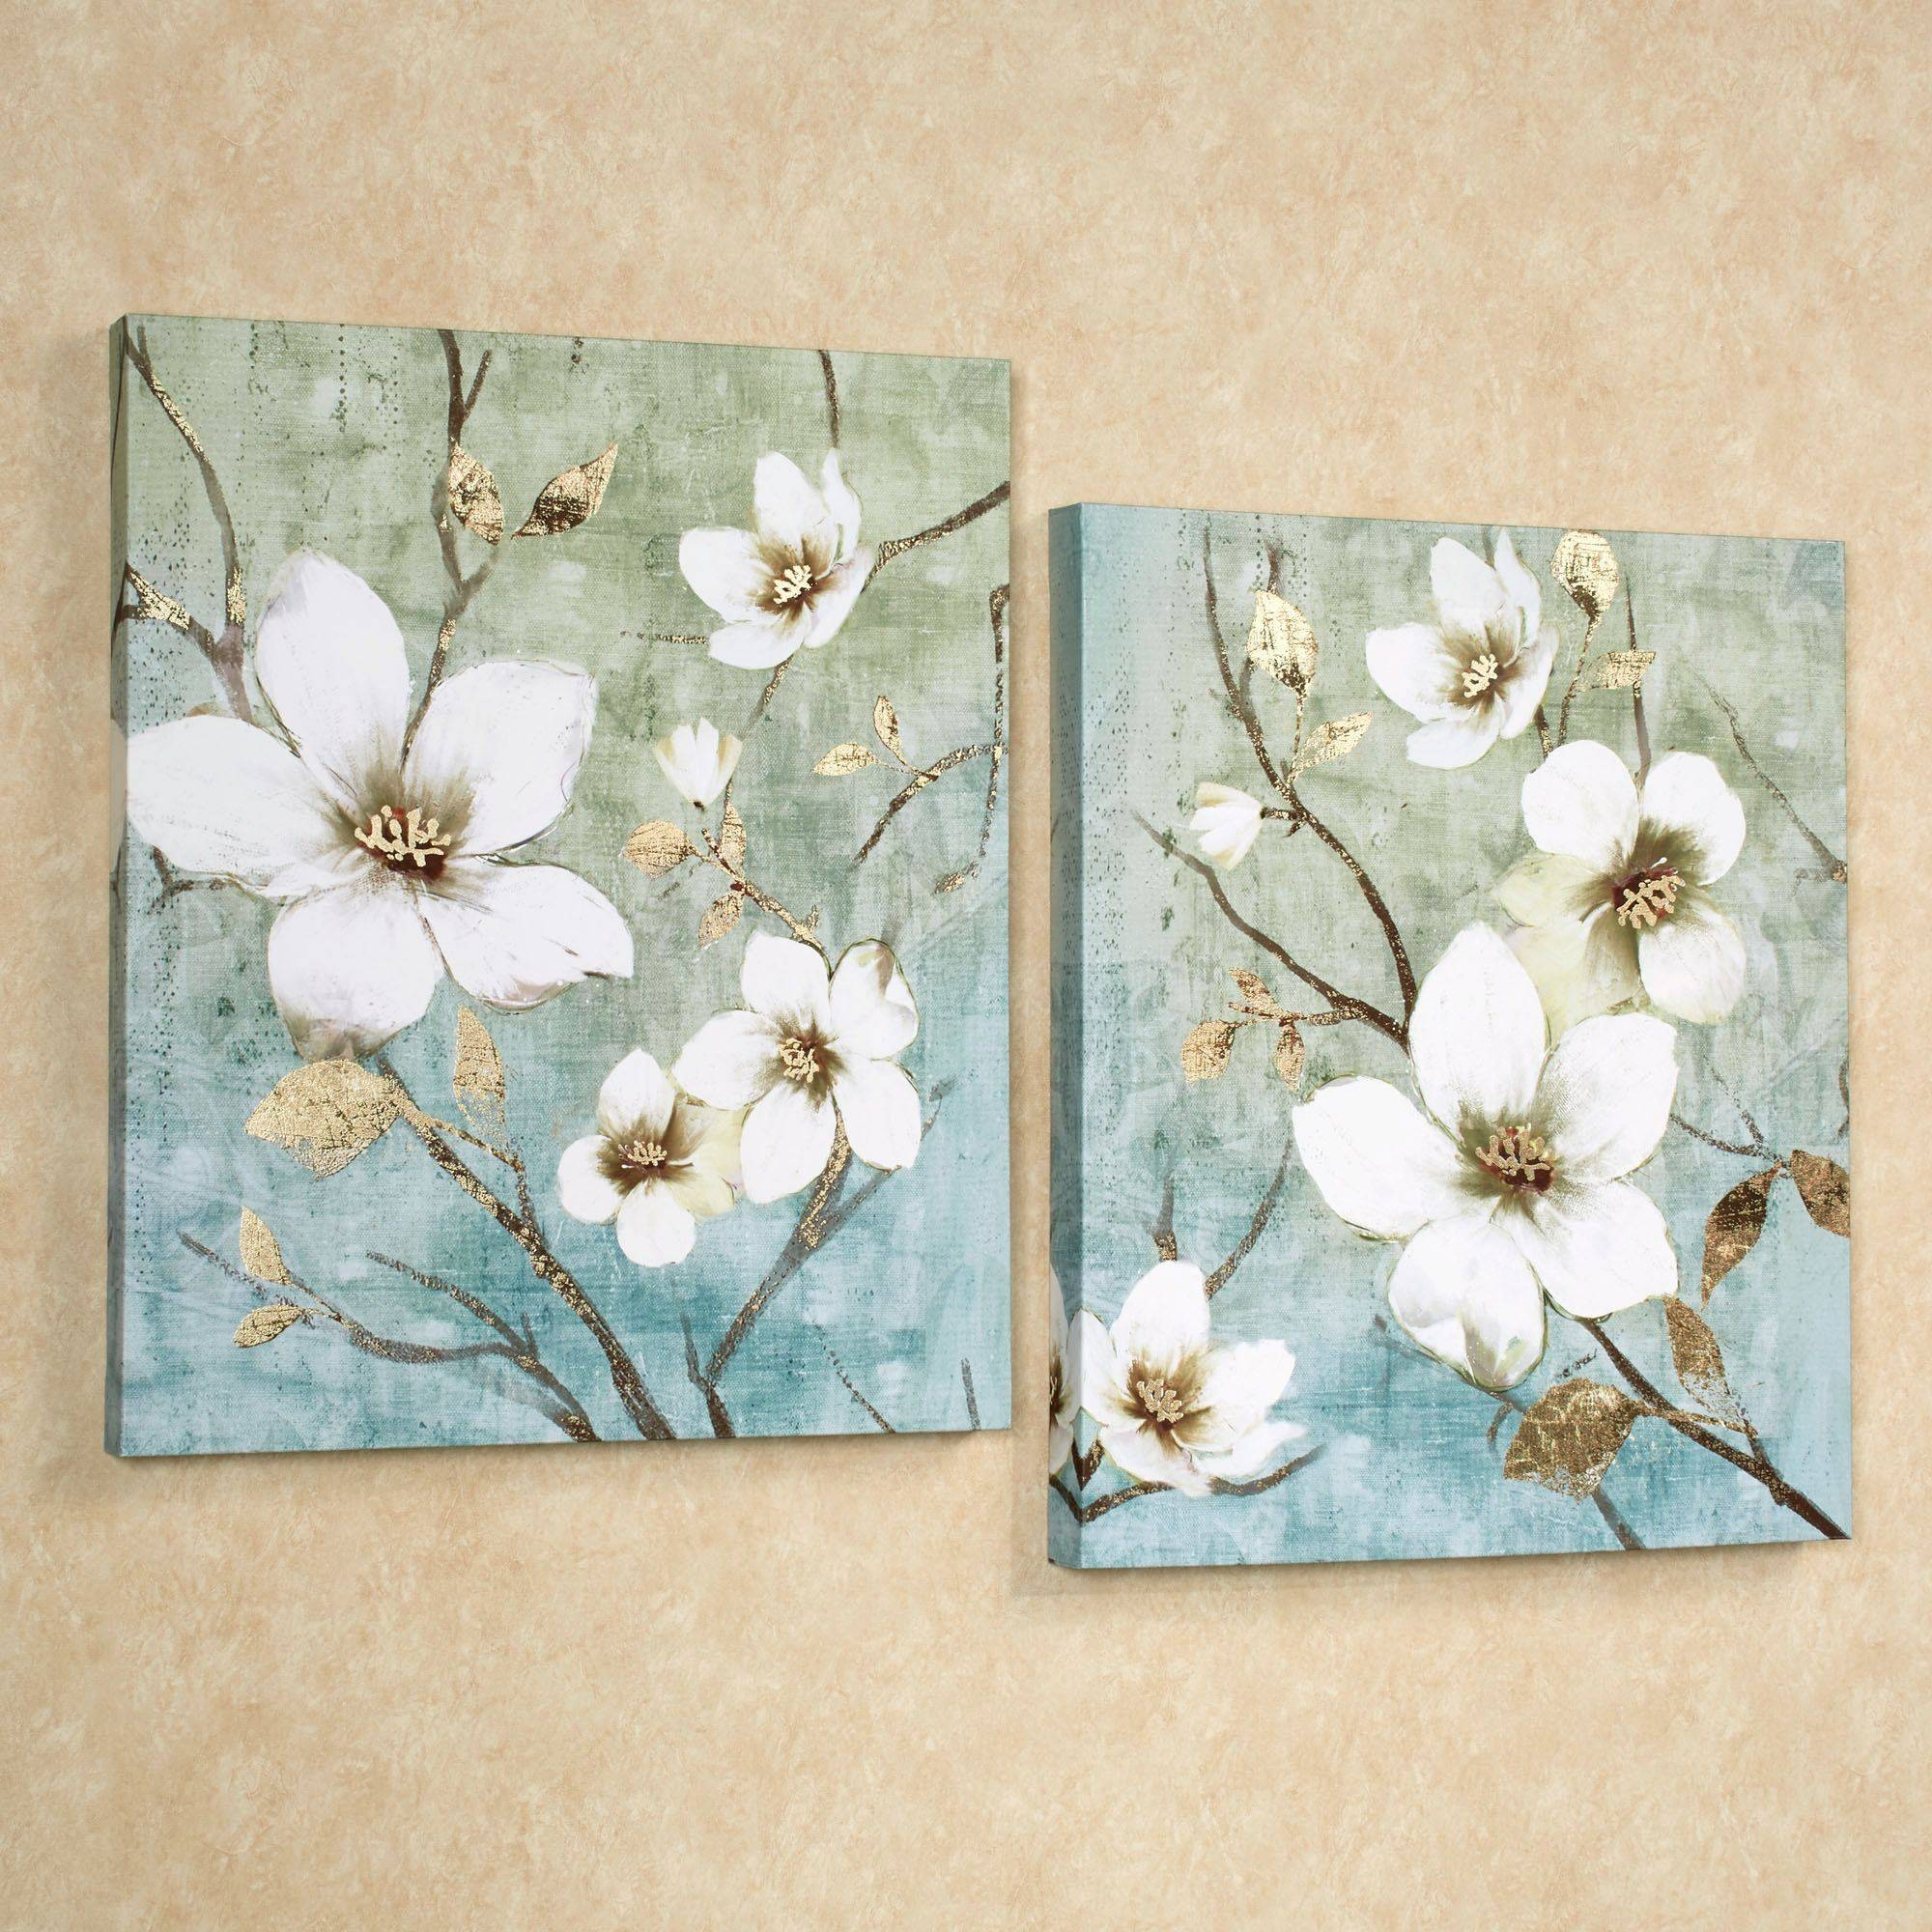 In Bloom Floral Canvas Wall Art Set Pertaining To Newest Floral Wall Art Canvas (View 8 of 20)